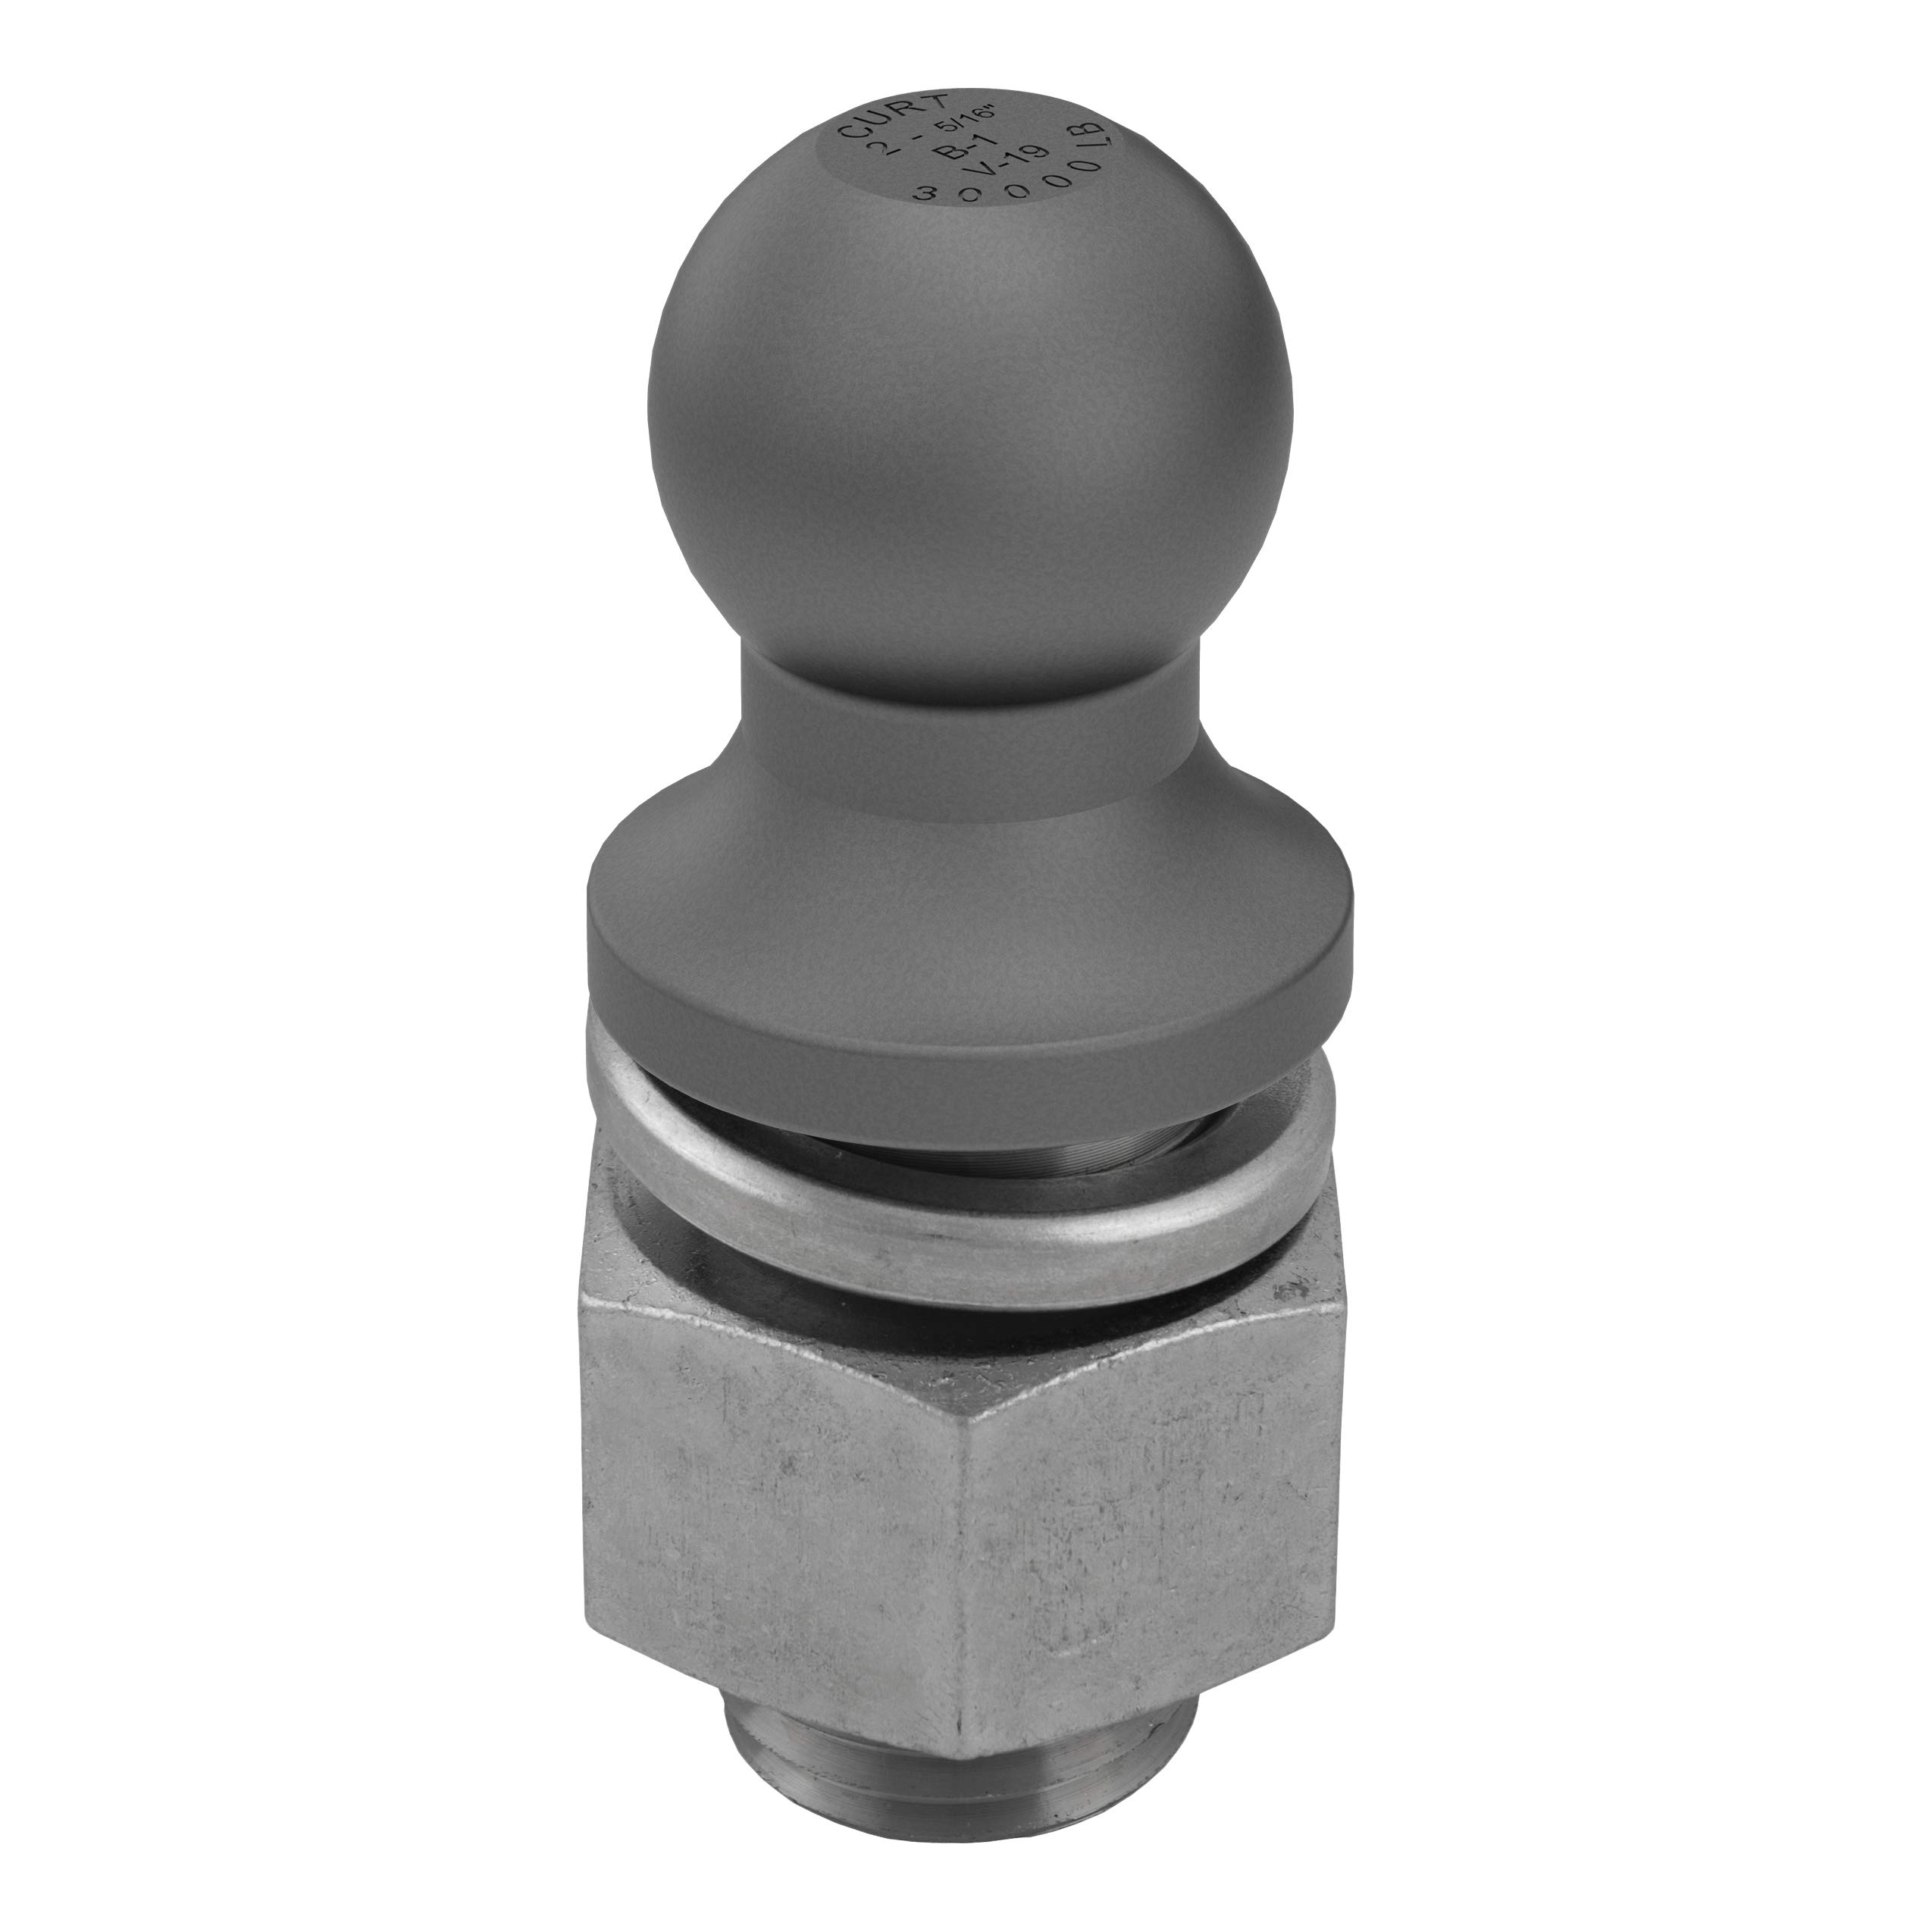 CURT 40088 Raw Steel Trailer Hitch Ball, 30,000 lbs., 2-5/16-Inch Diameter Tow Ball with 2-Inch x 3-1/2-Inch Shank by CURT